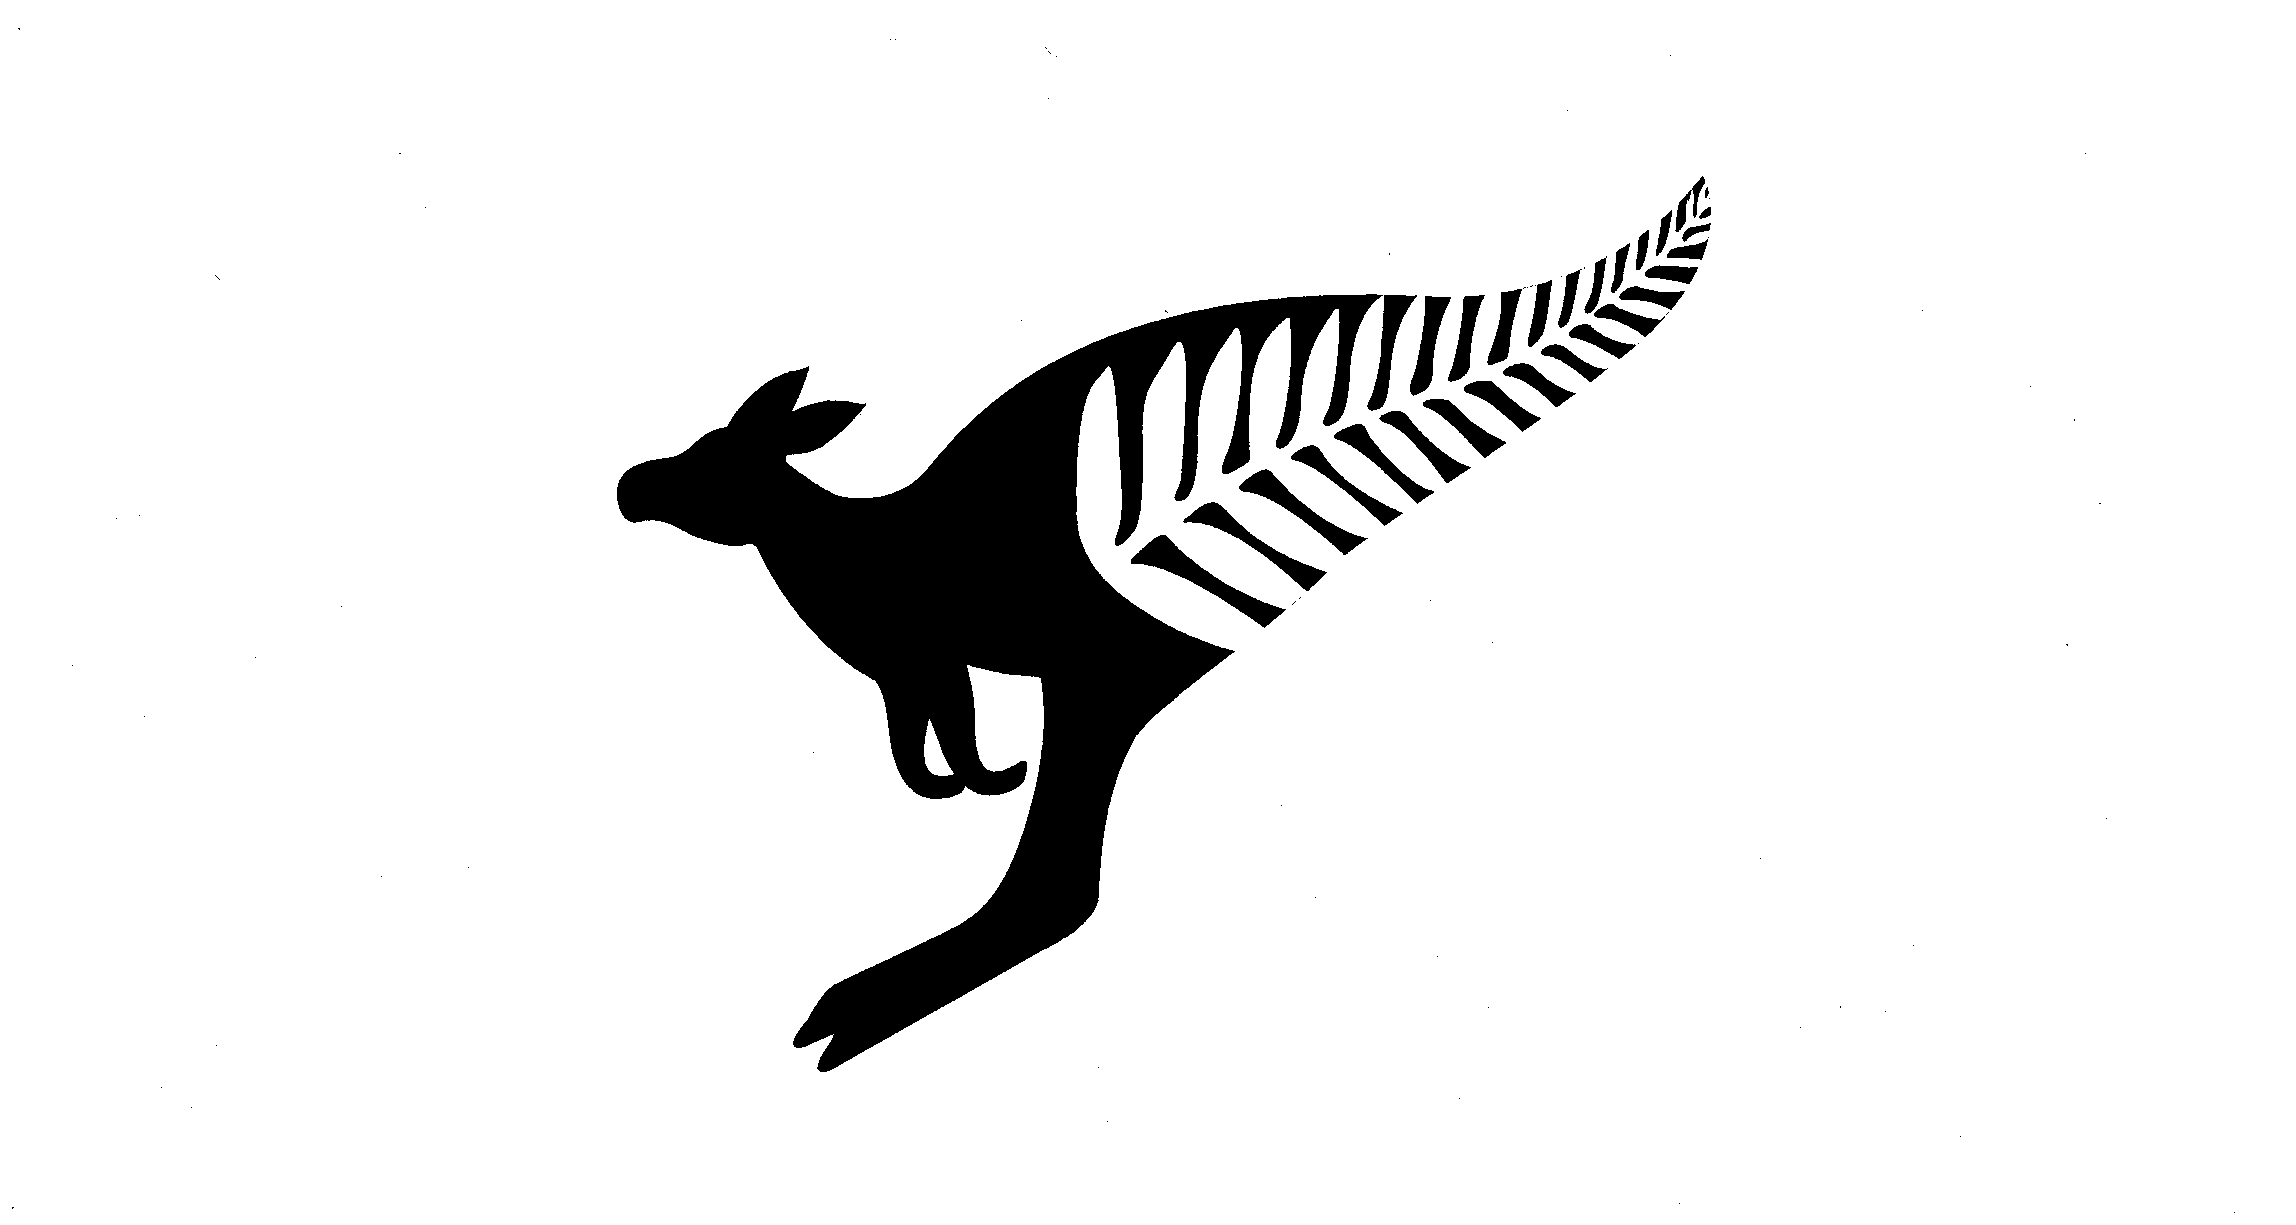 Fern Leaf Forms Tail Of Kangaroo Silhouette By Cazna